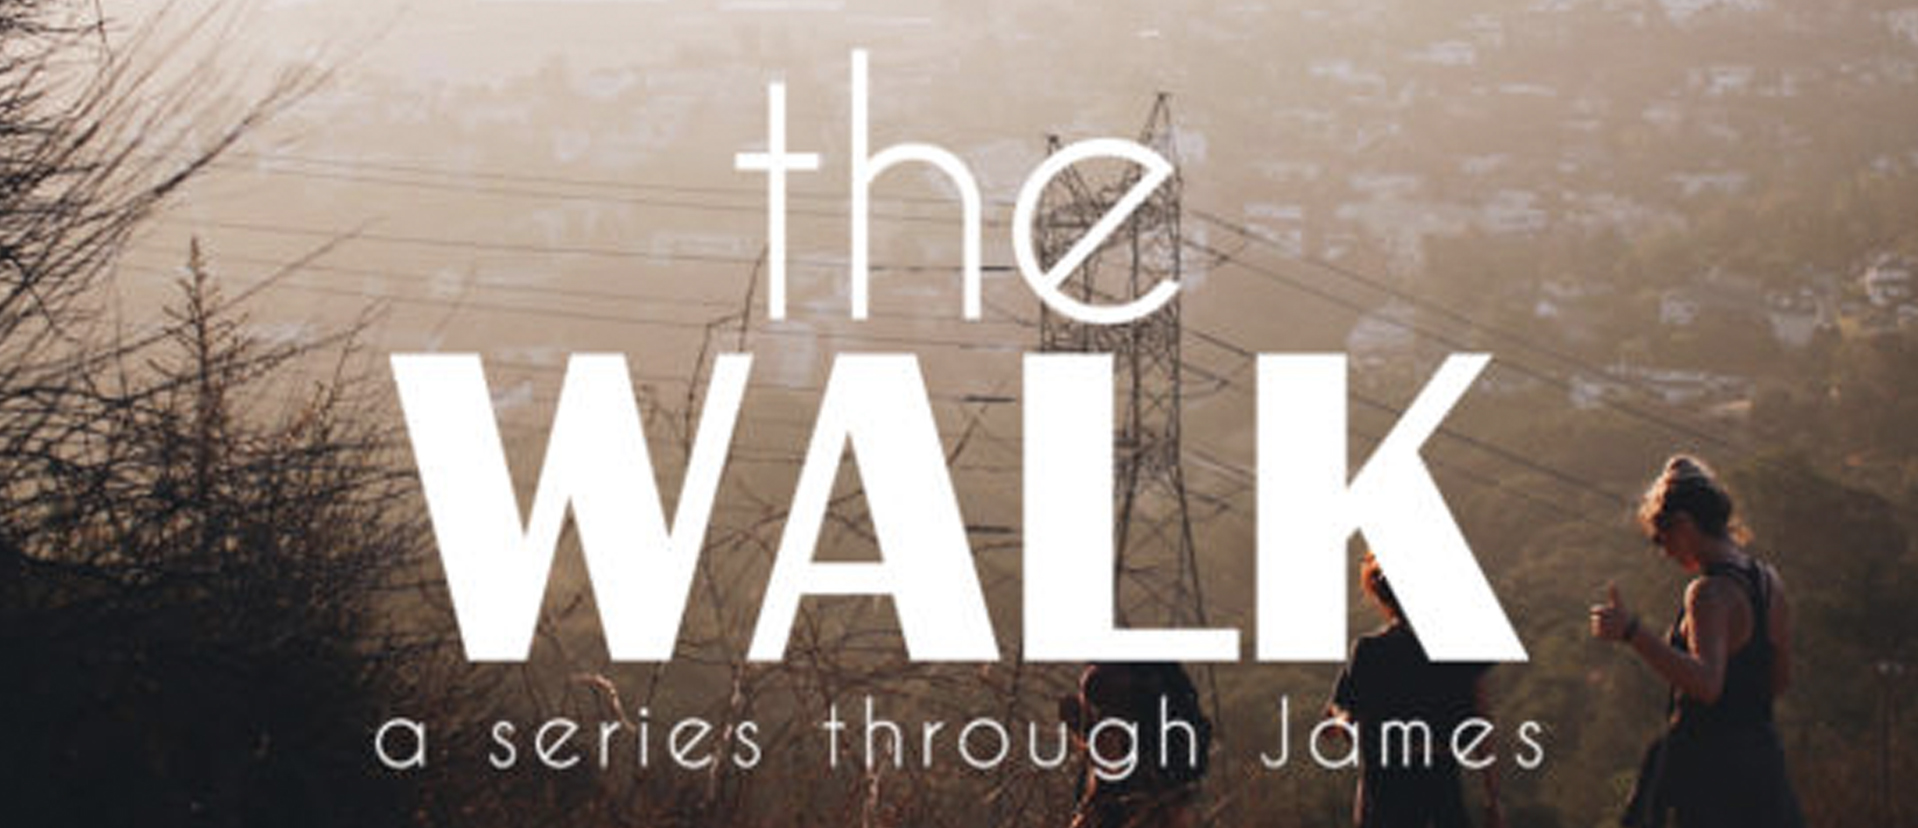 Website_Series_Header_The_Walk.jpg